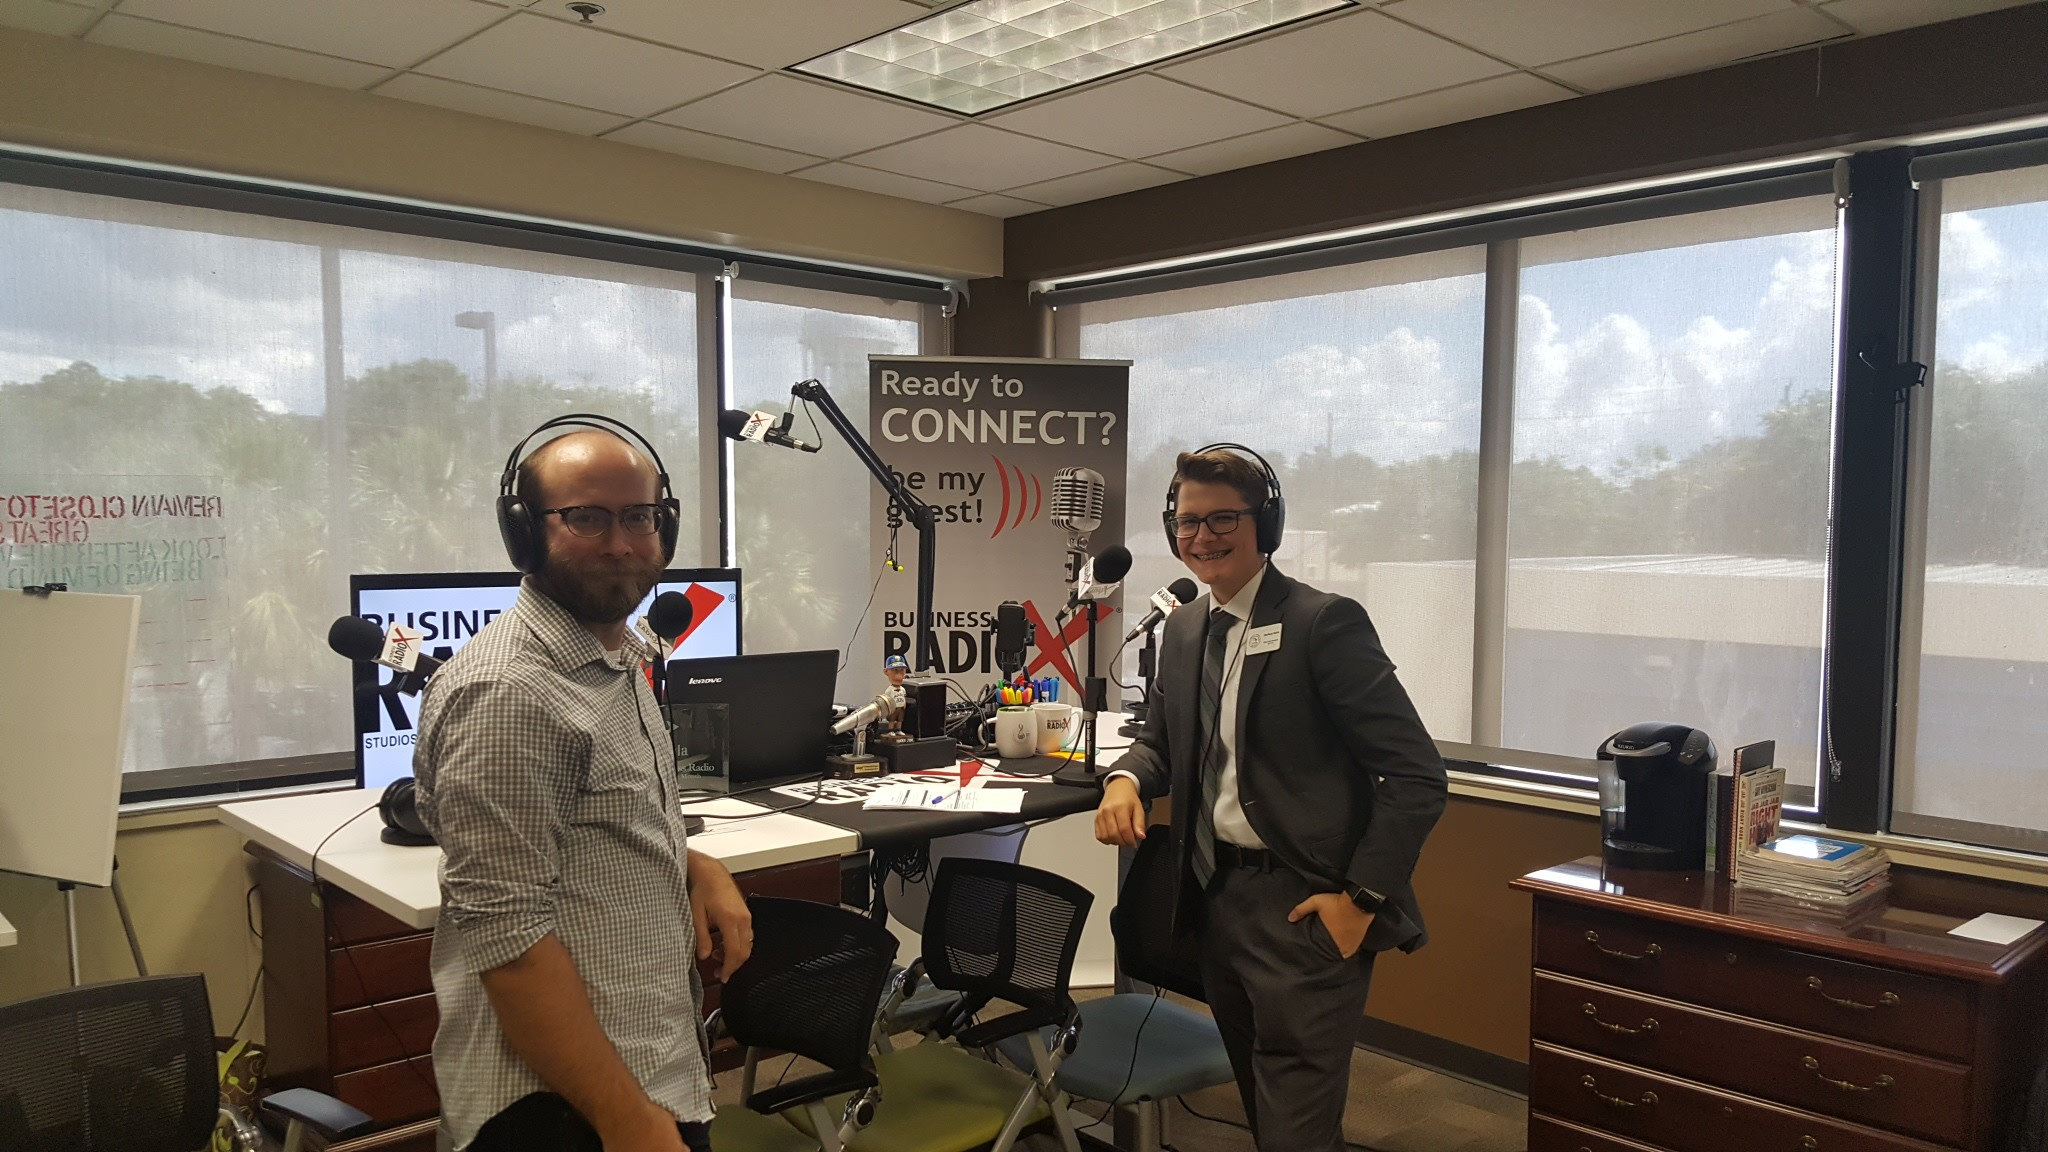 Pensacola Business Radio: Guests Doug Stanford and Zachary